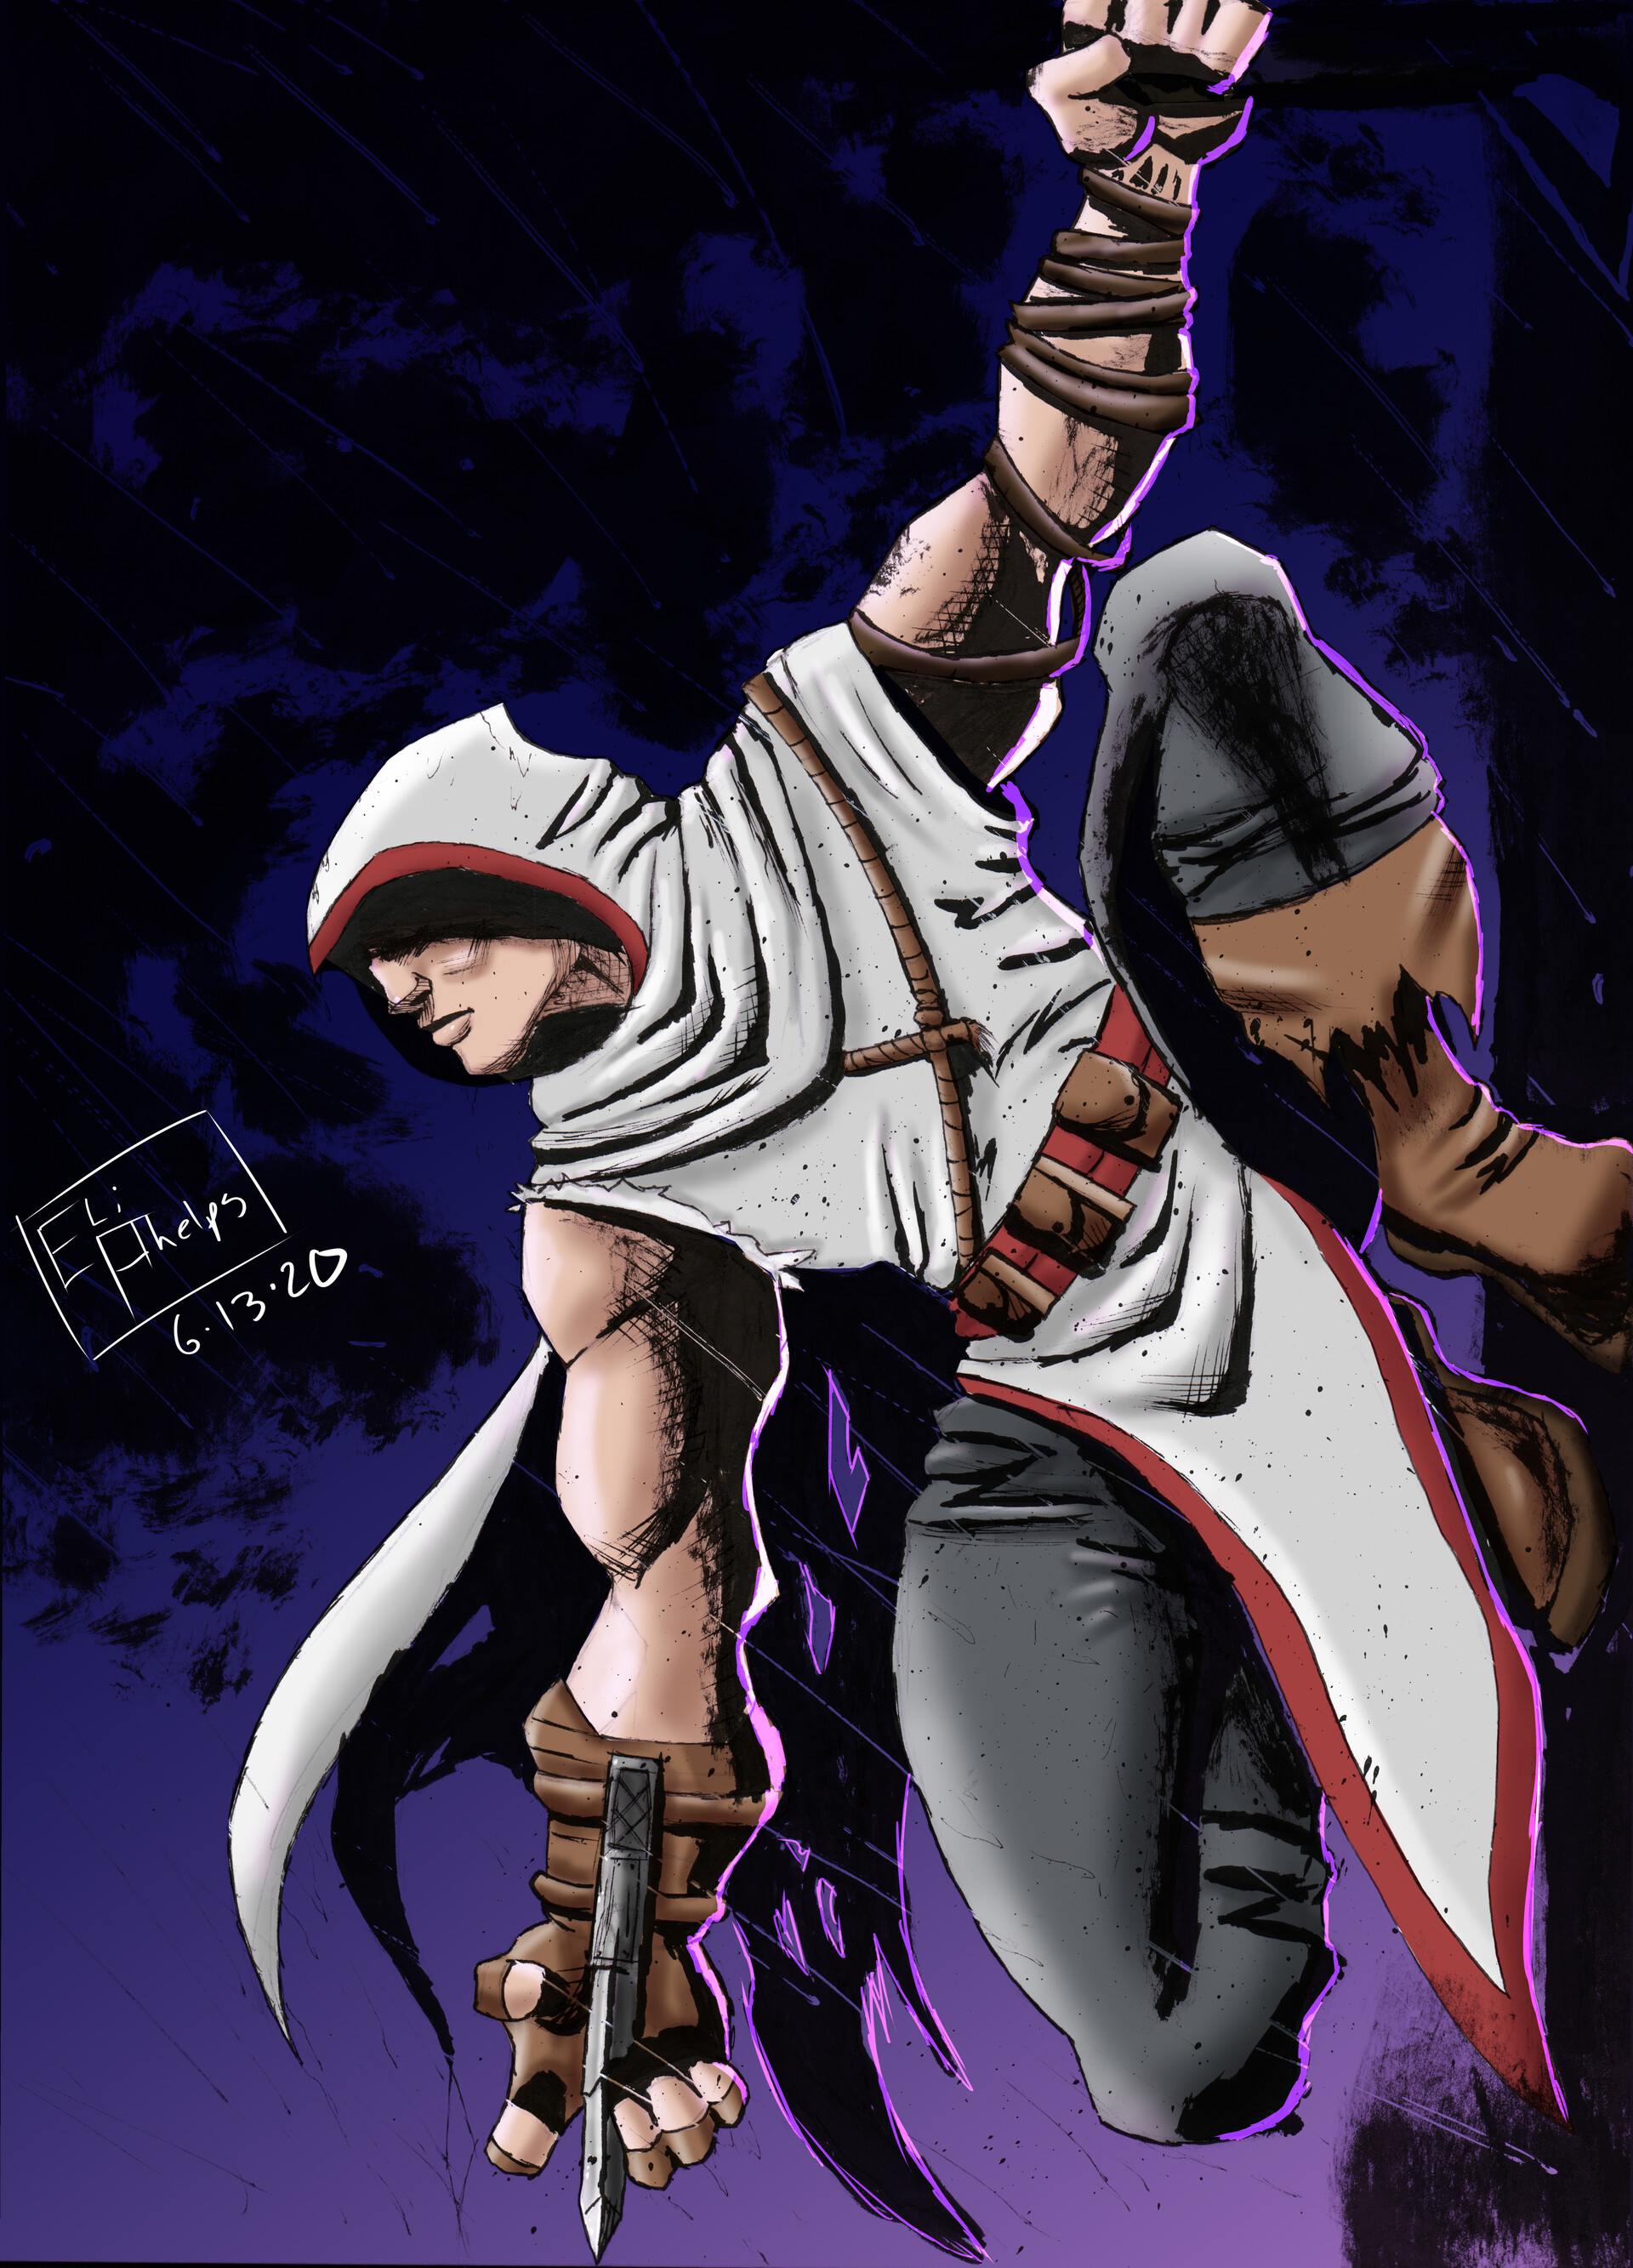 Elijah Phelps Assassins Creed Fanart